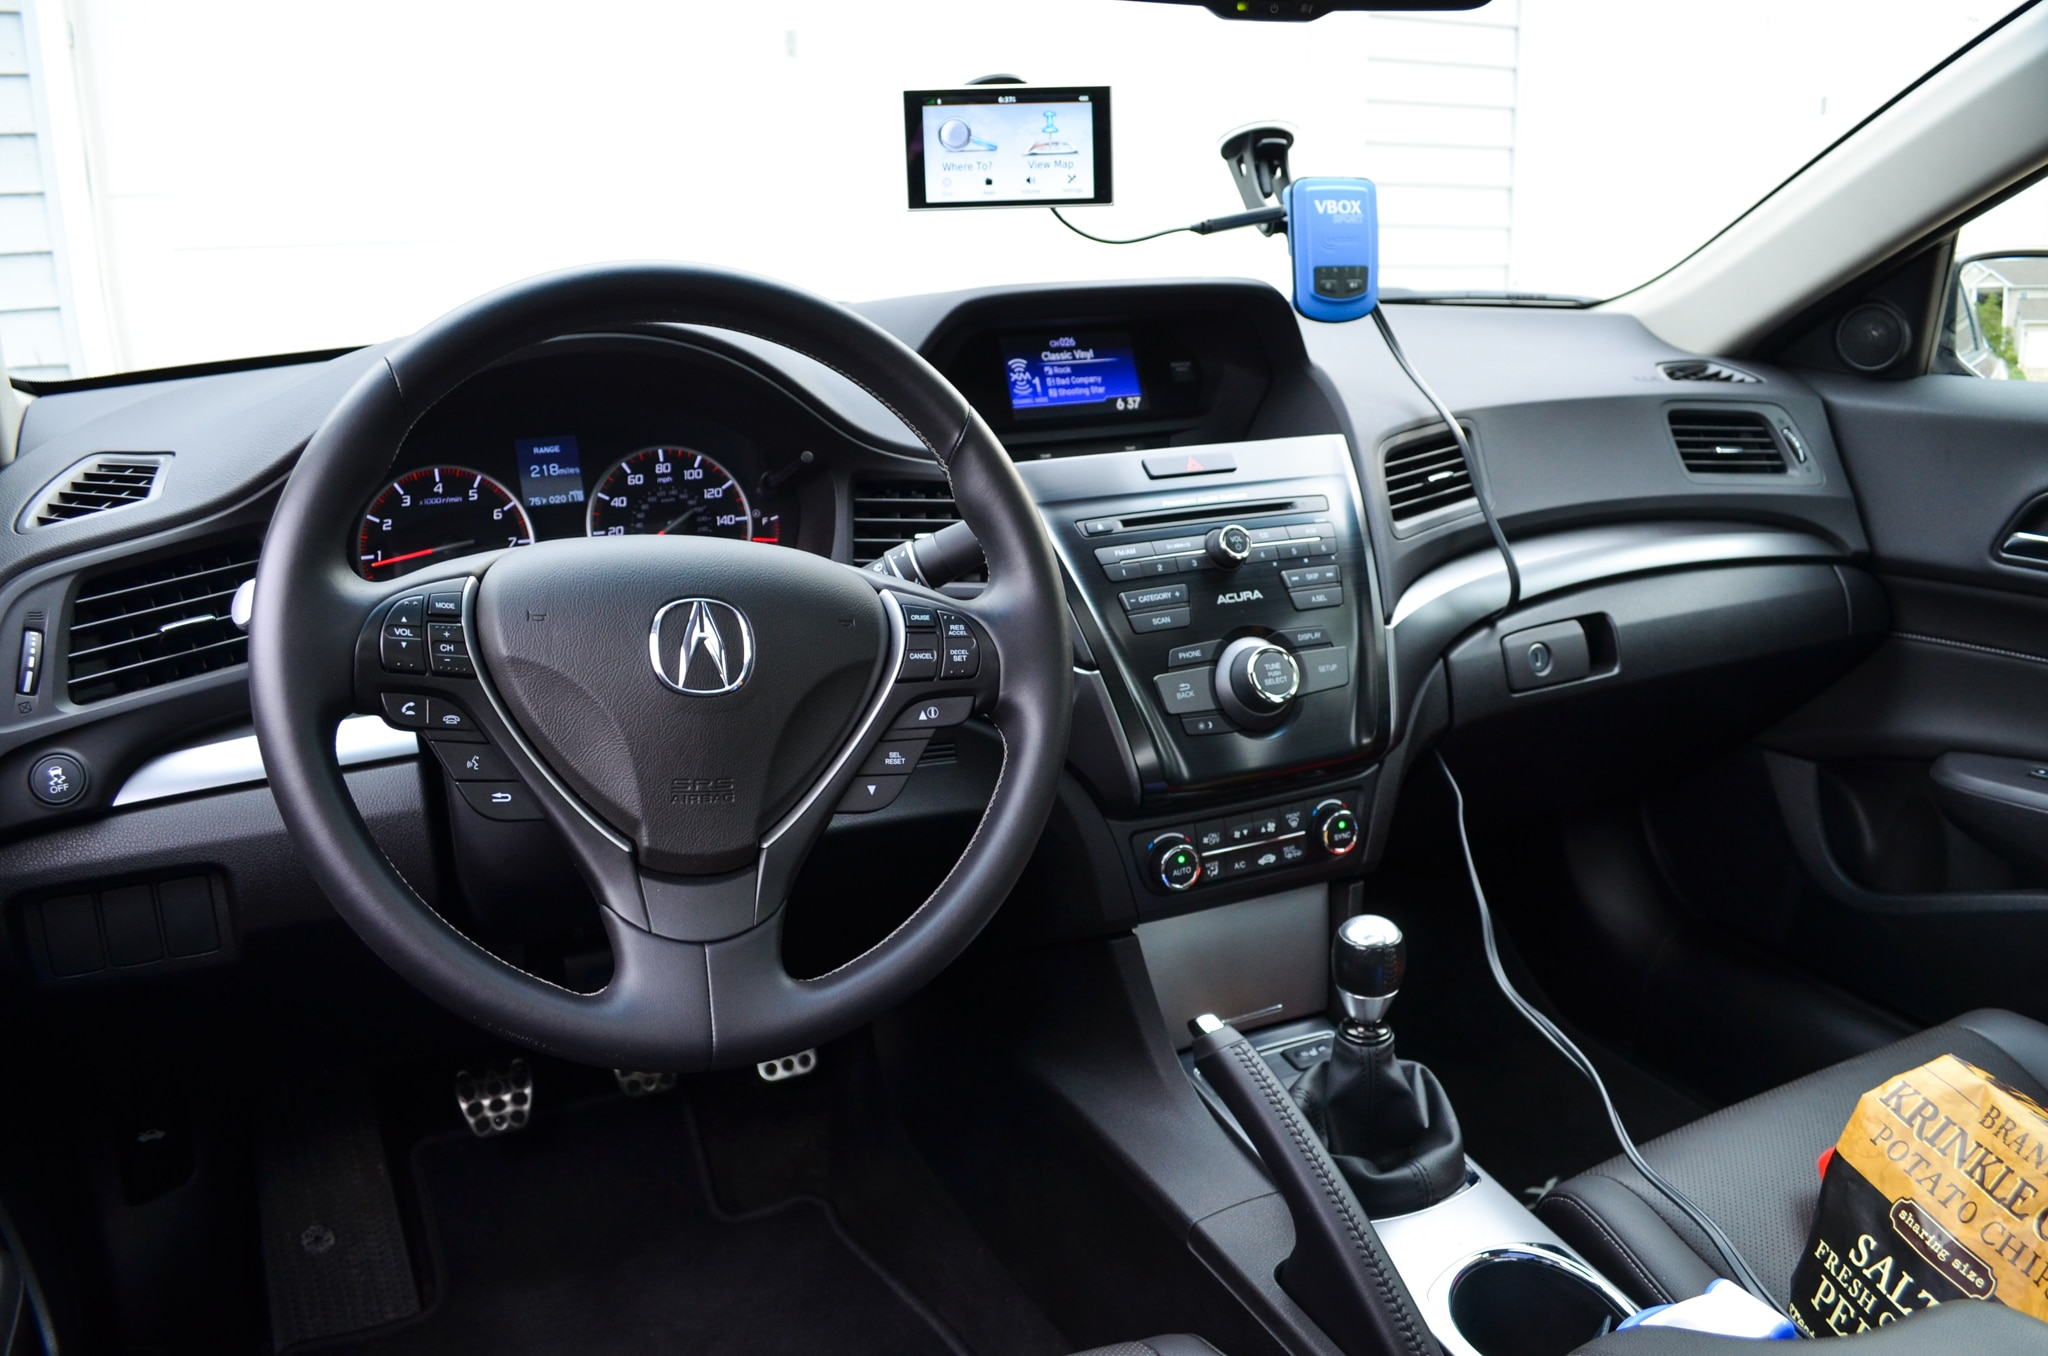 2013 Acura ILX - Four Seasons Update - July 2013 ...